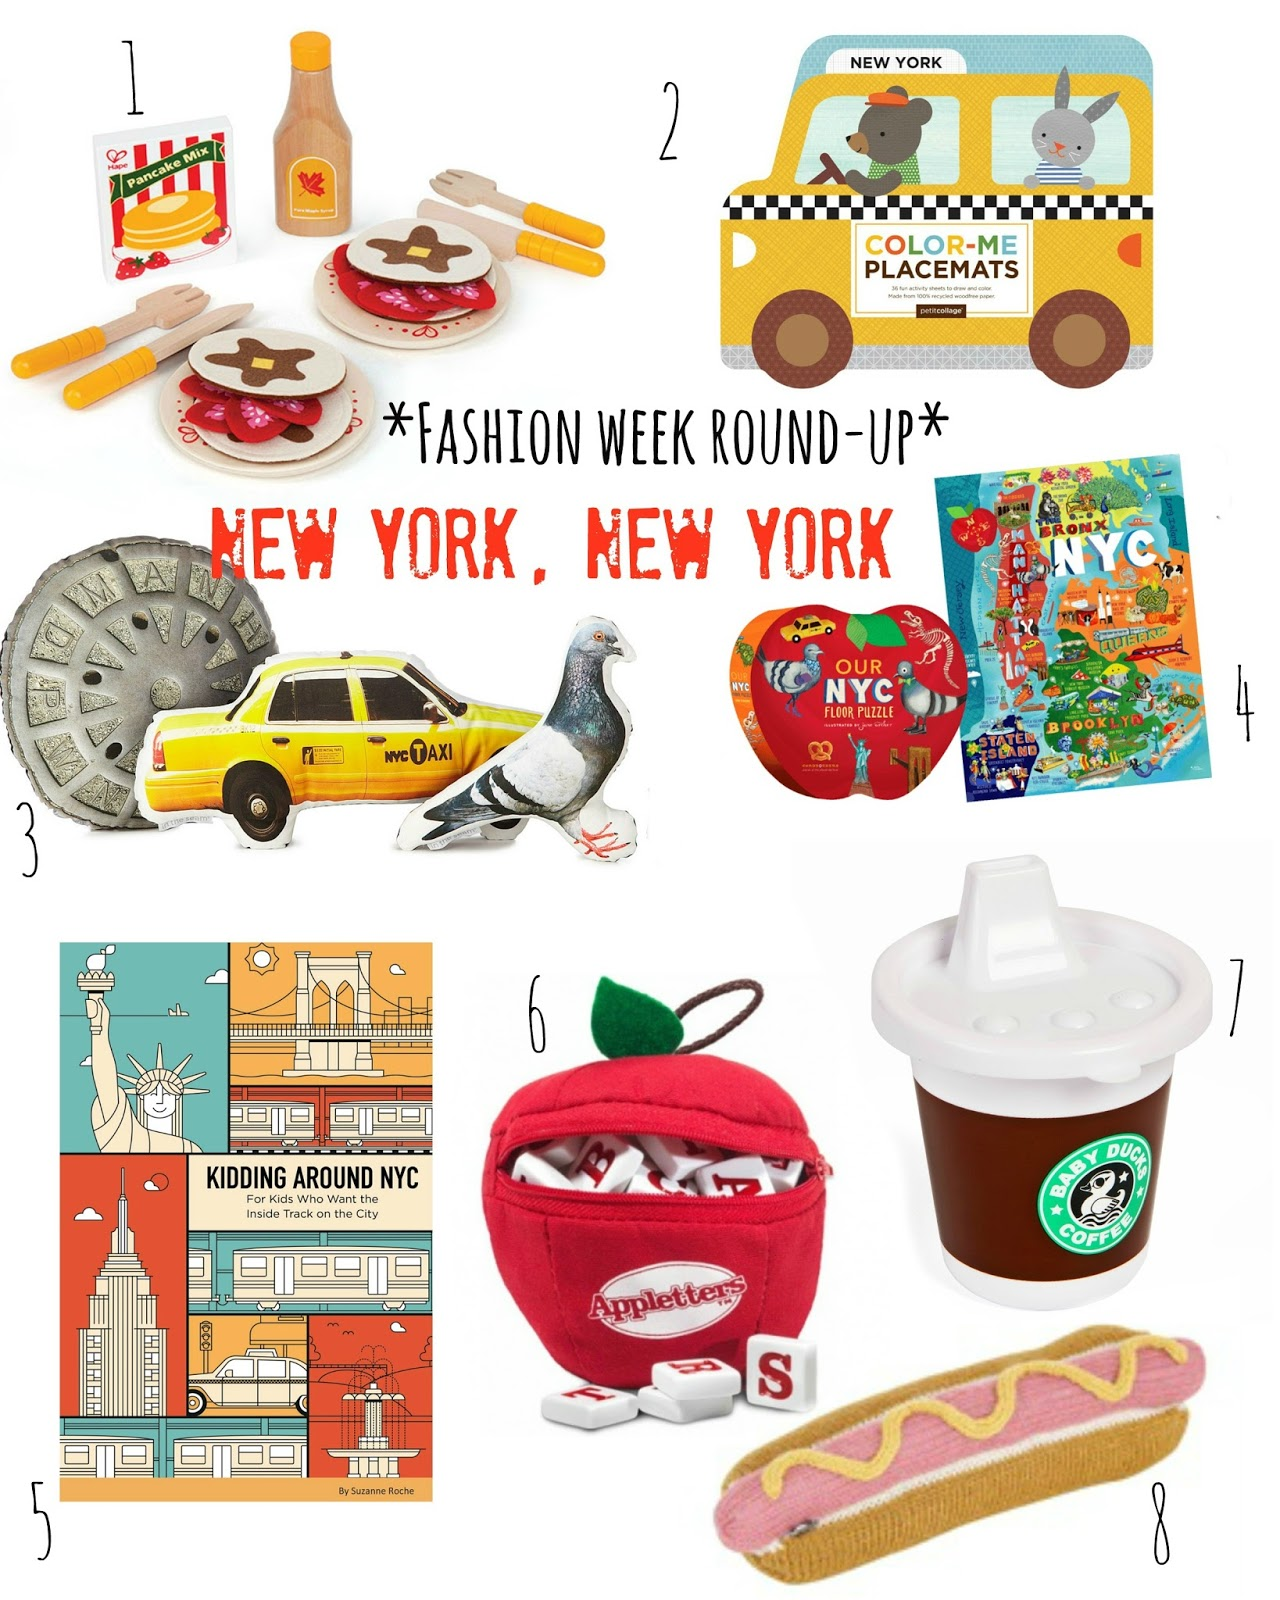 mamasVIB | V. I. BUSY BEES: 8 Mini fashionista buys inspired by New York Fashion Week